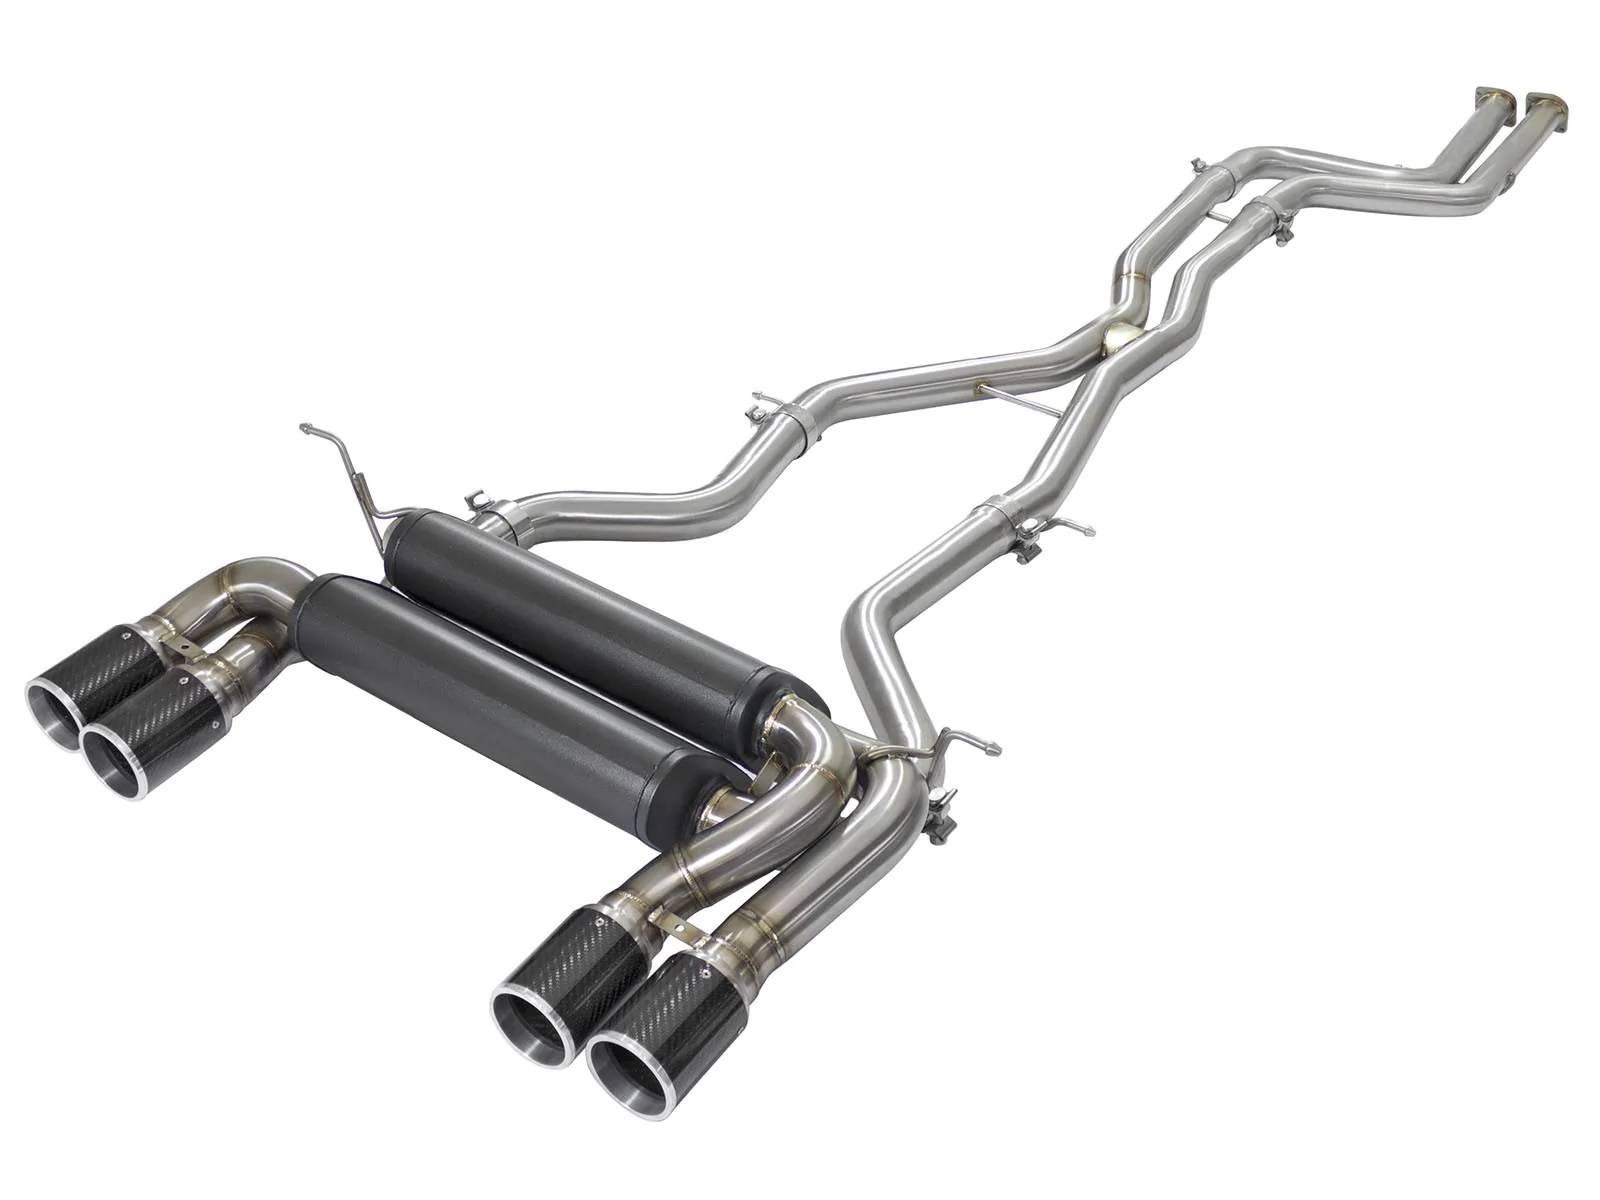 M4 Performance Exhaust M3 M4 Downpipe Back S55 Mach Force Xp Exhaust System